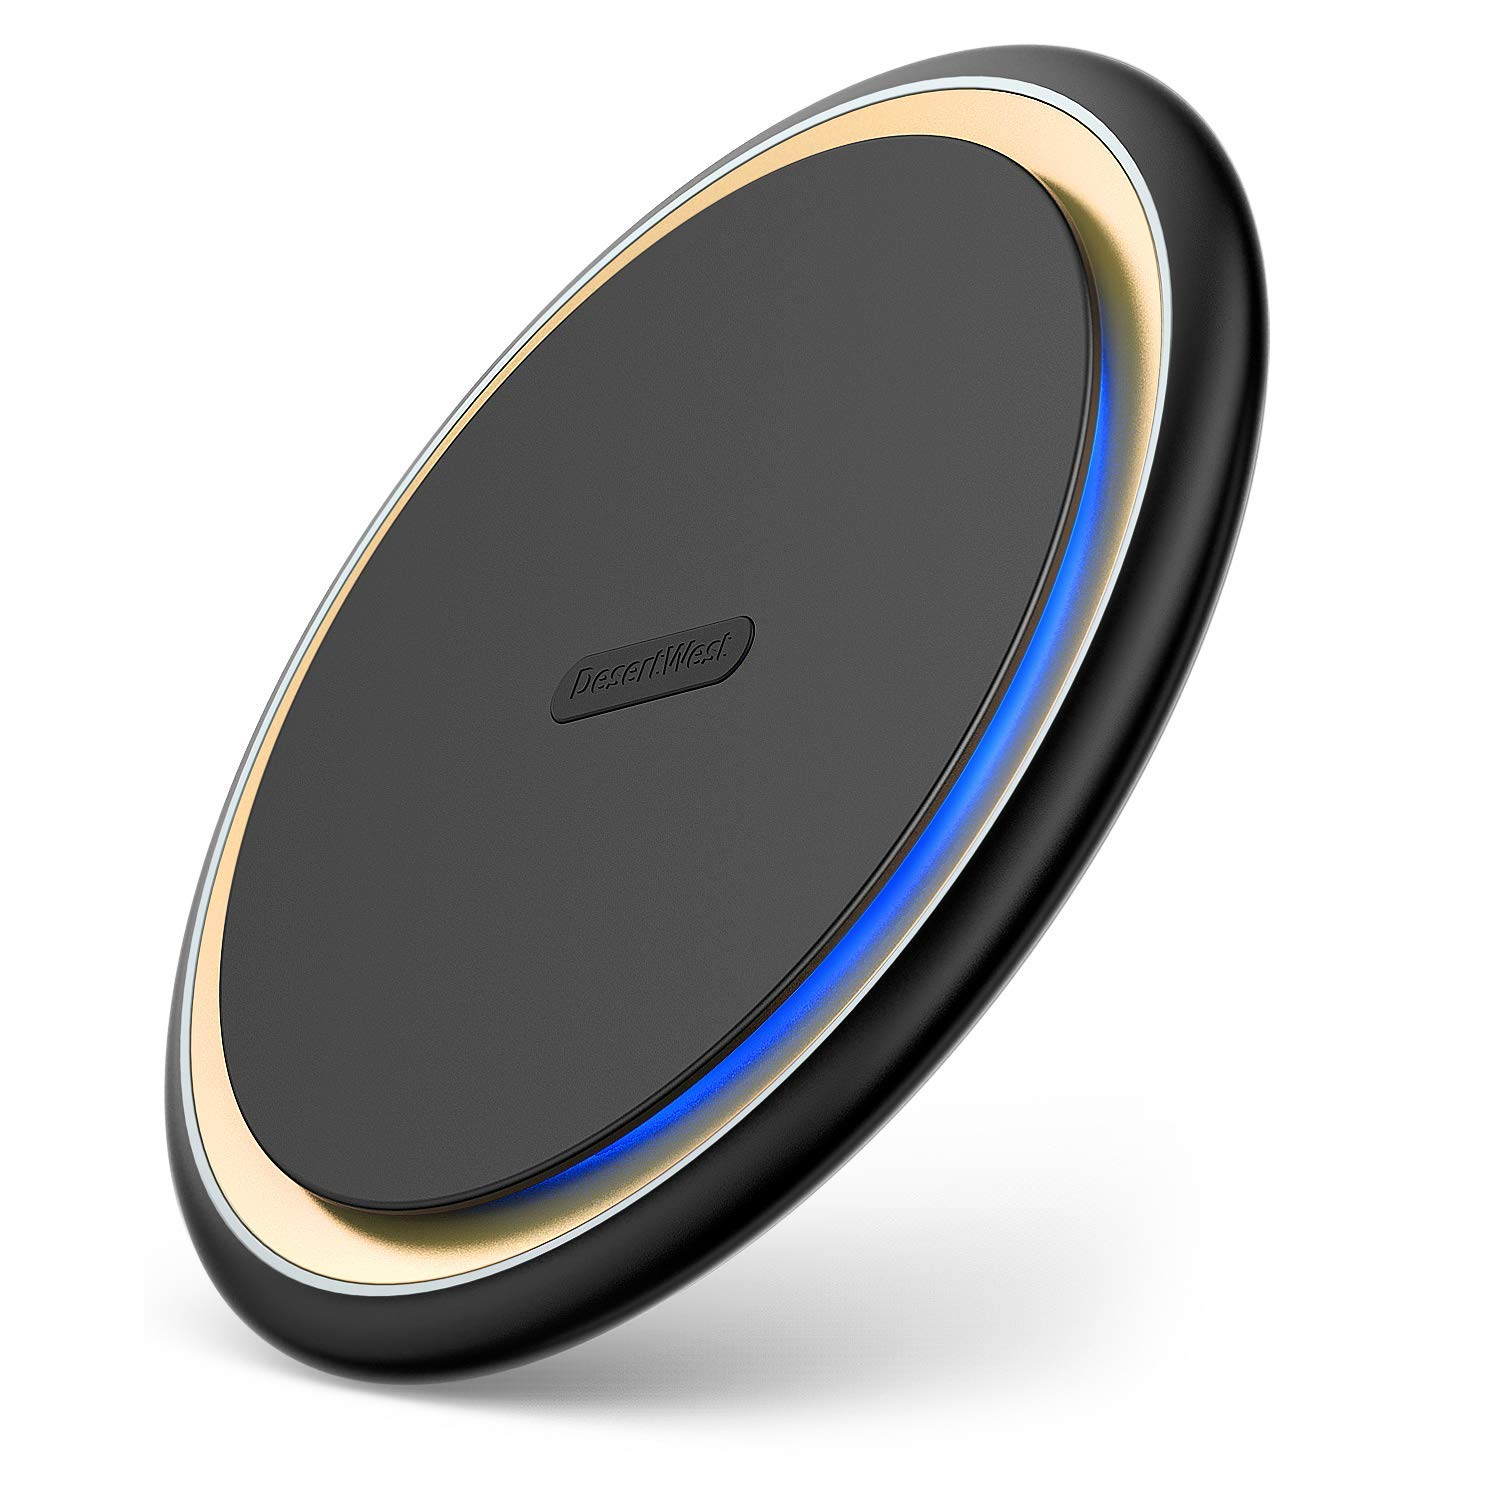 DesertWest Fast Wireless Charger Exclusive for iPhone - 7.5W Qi Wireless Charger Compatible with iPhone Xs Max, XS, XR, X, 8, 8+, Samsung Galaxy S10, S10+, S10e, S9, S9+, S8, S8+ and more